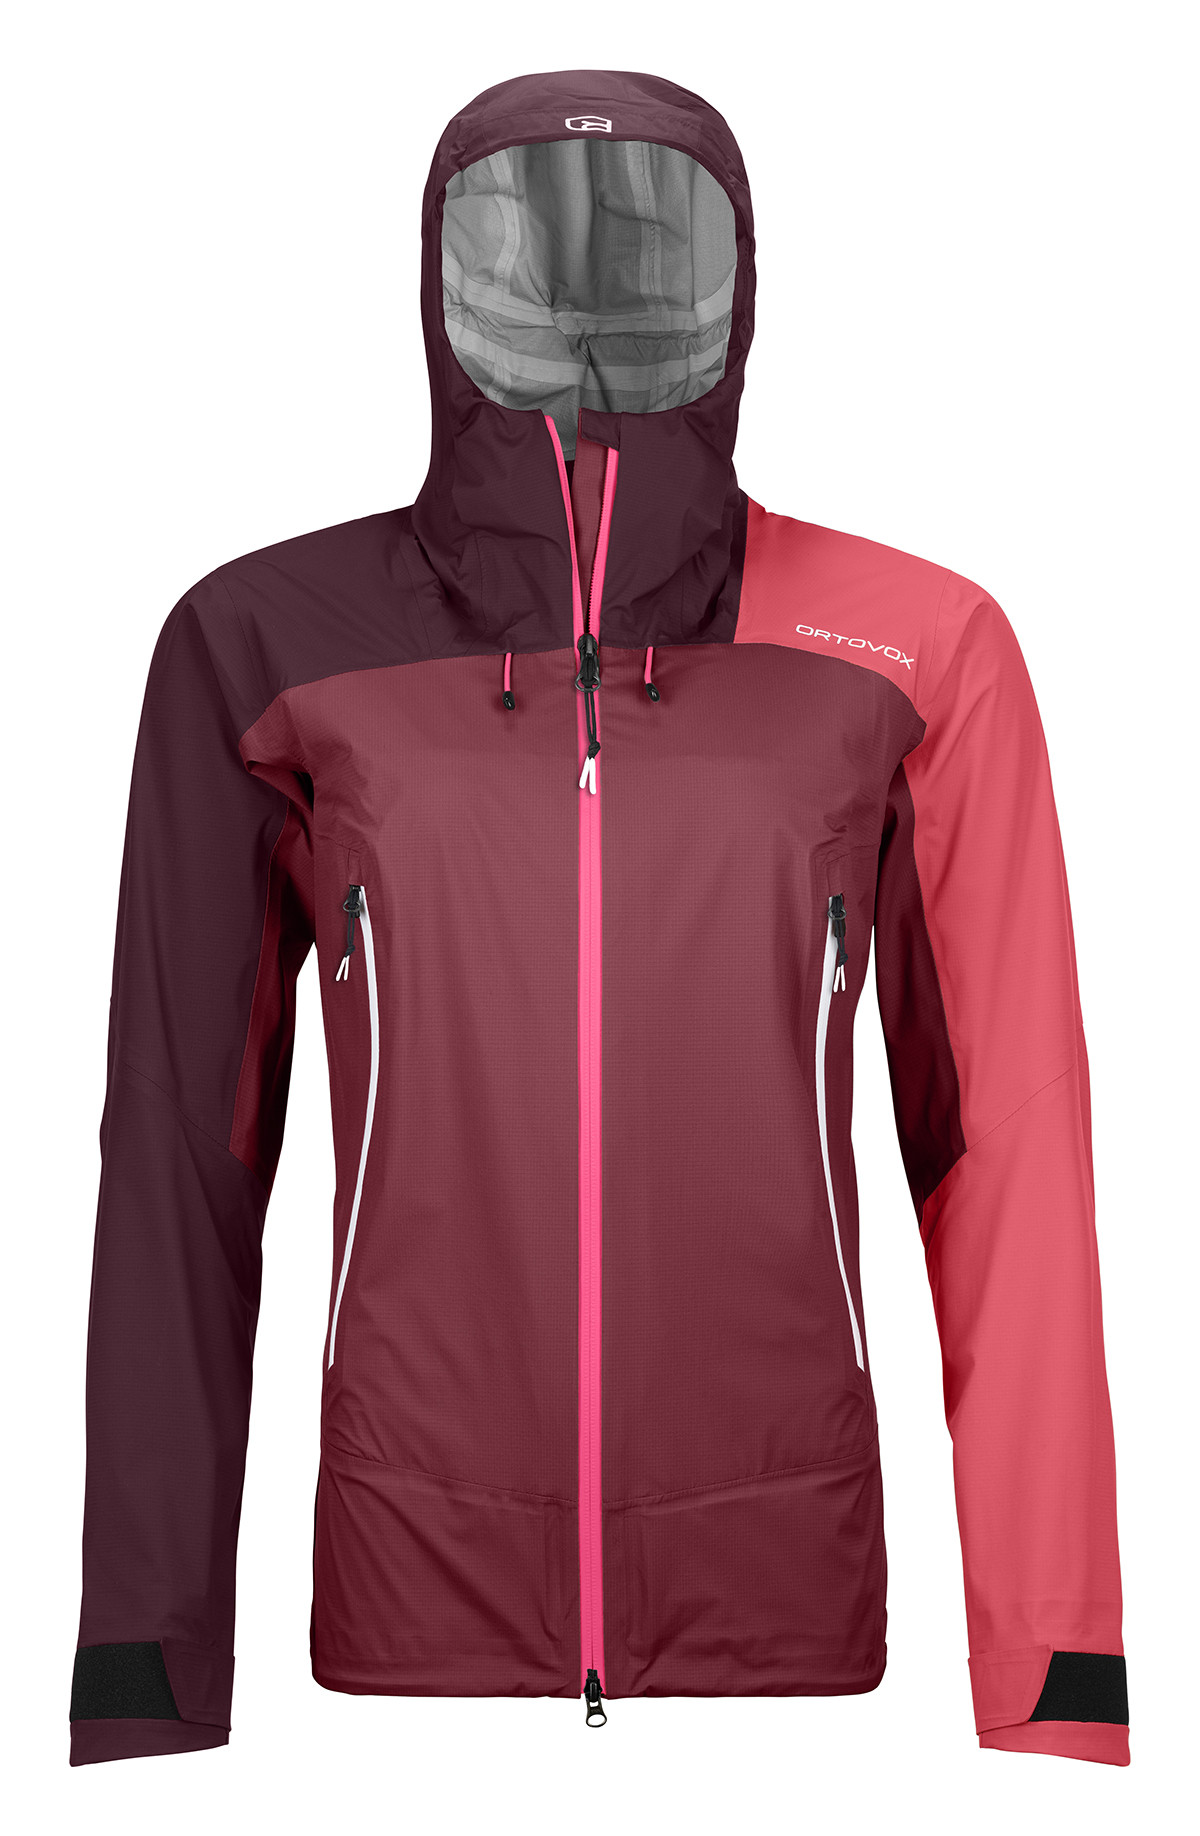 ortovox-bunda-westalpen-3l-light-jacket-w.jpg